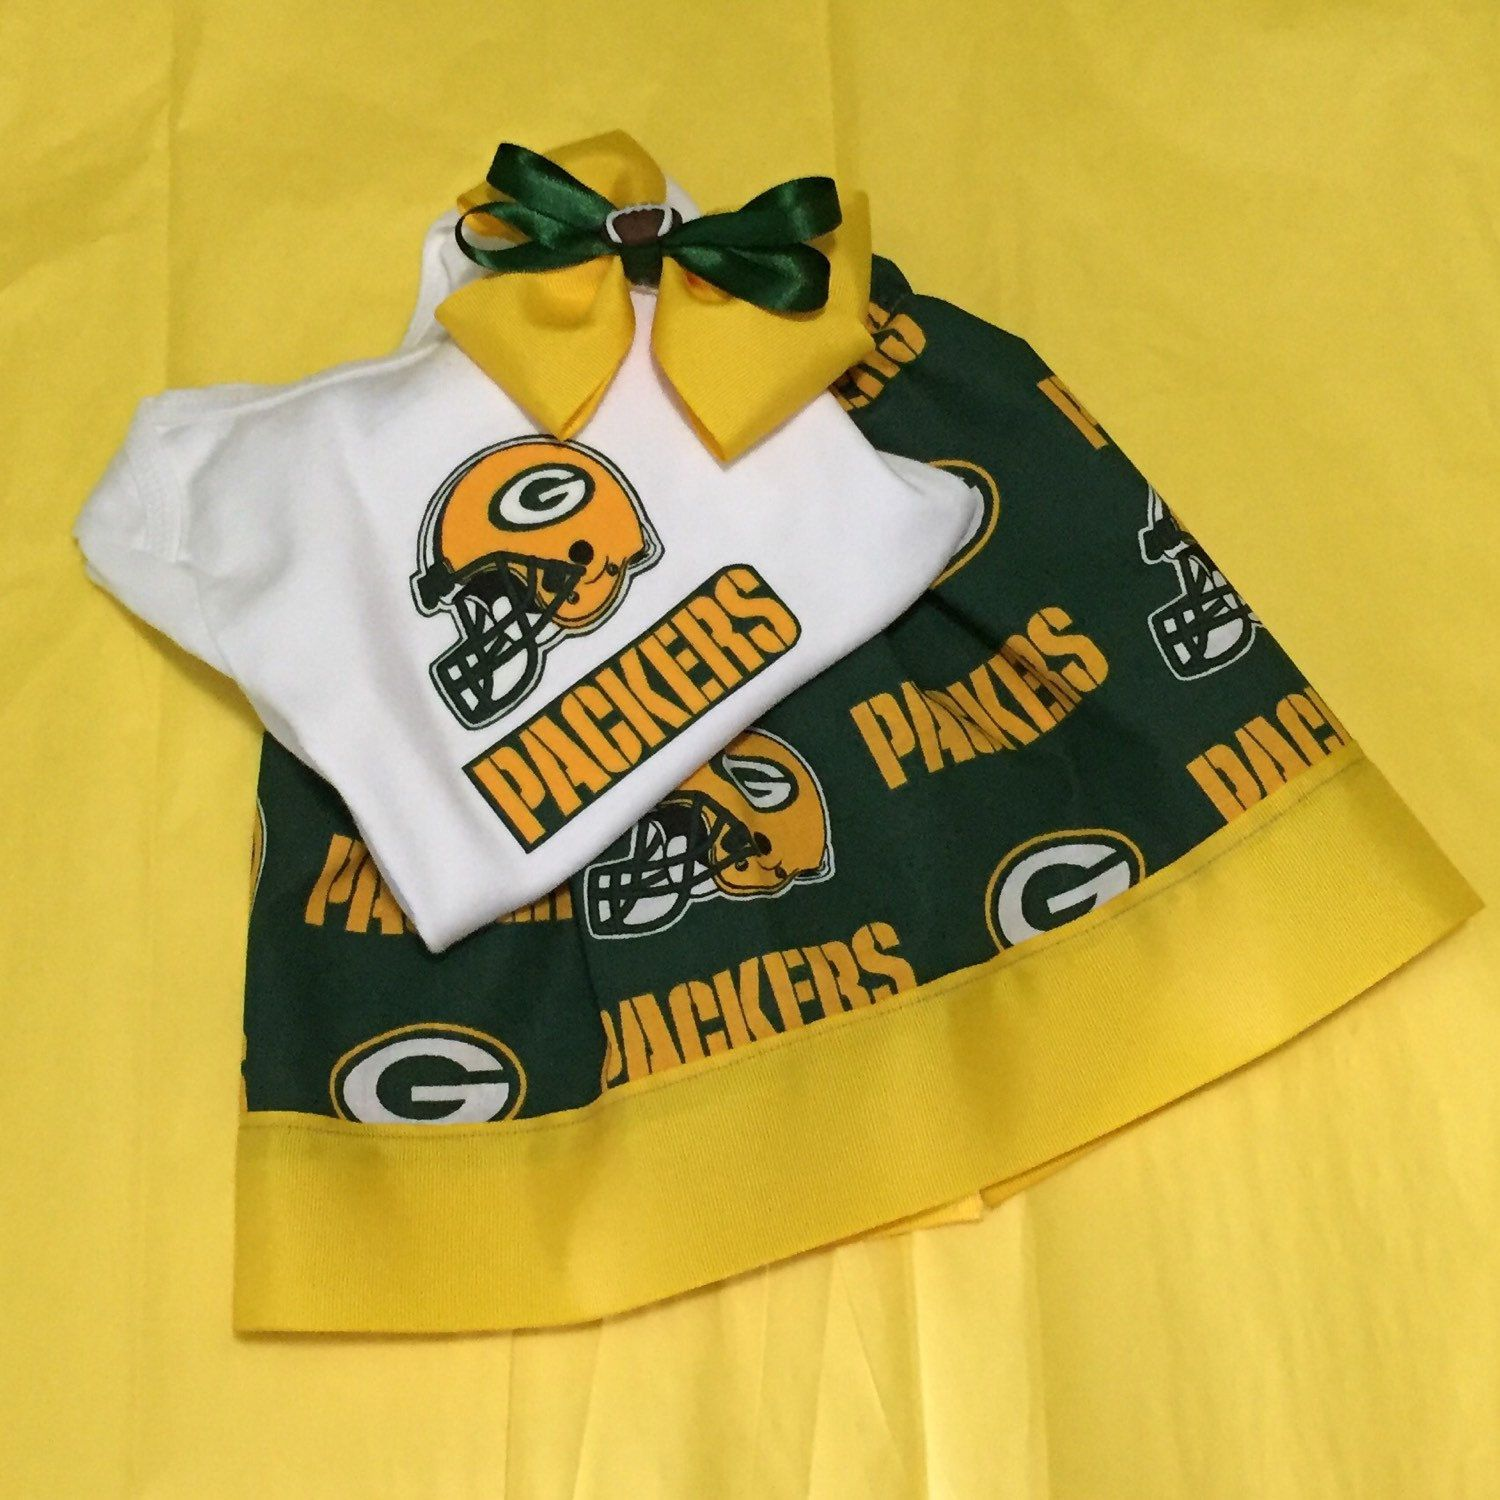 Green Bay Packers Inspired Outfit